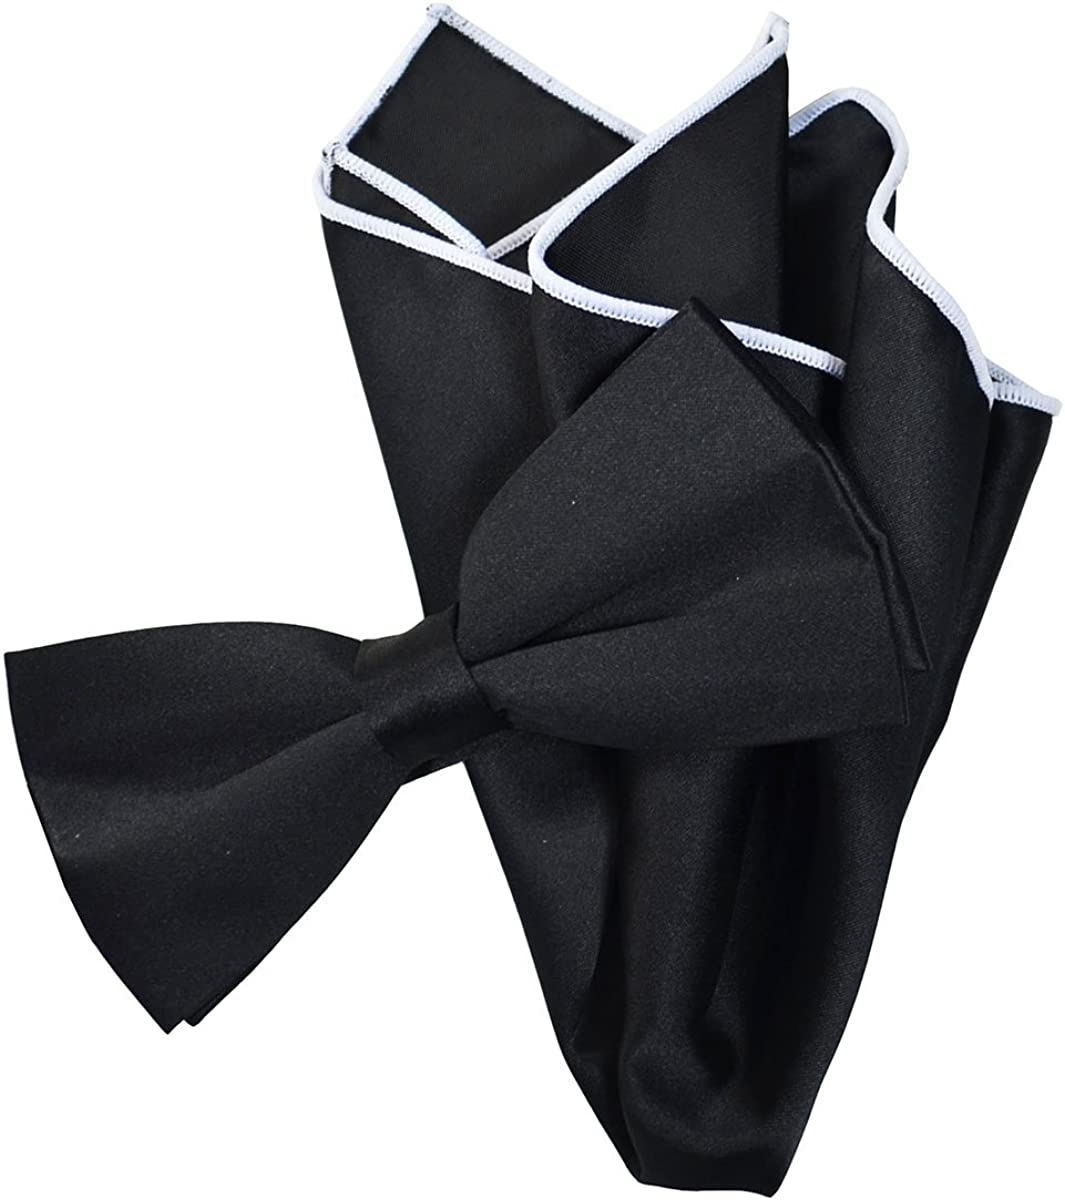 Solid Black Men's Bow Tie with Contrast Trim Pocket Square